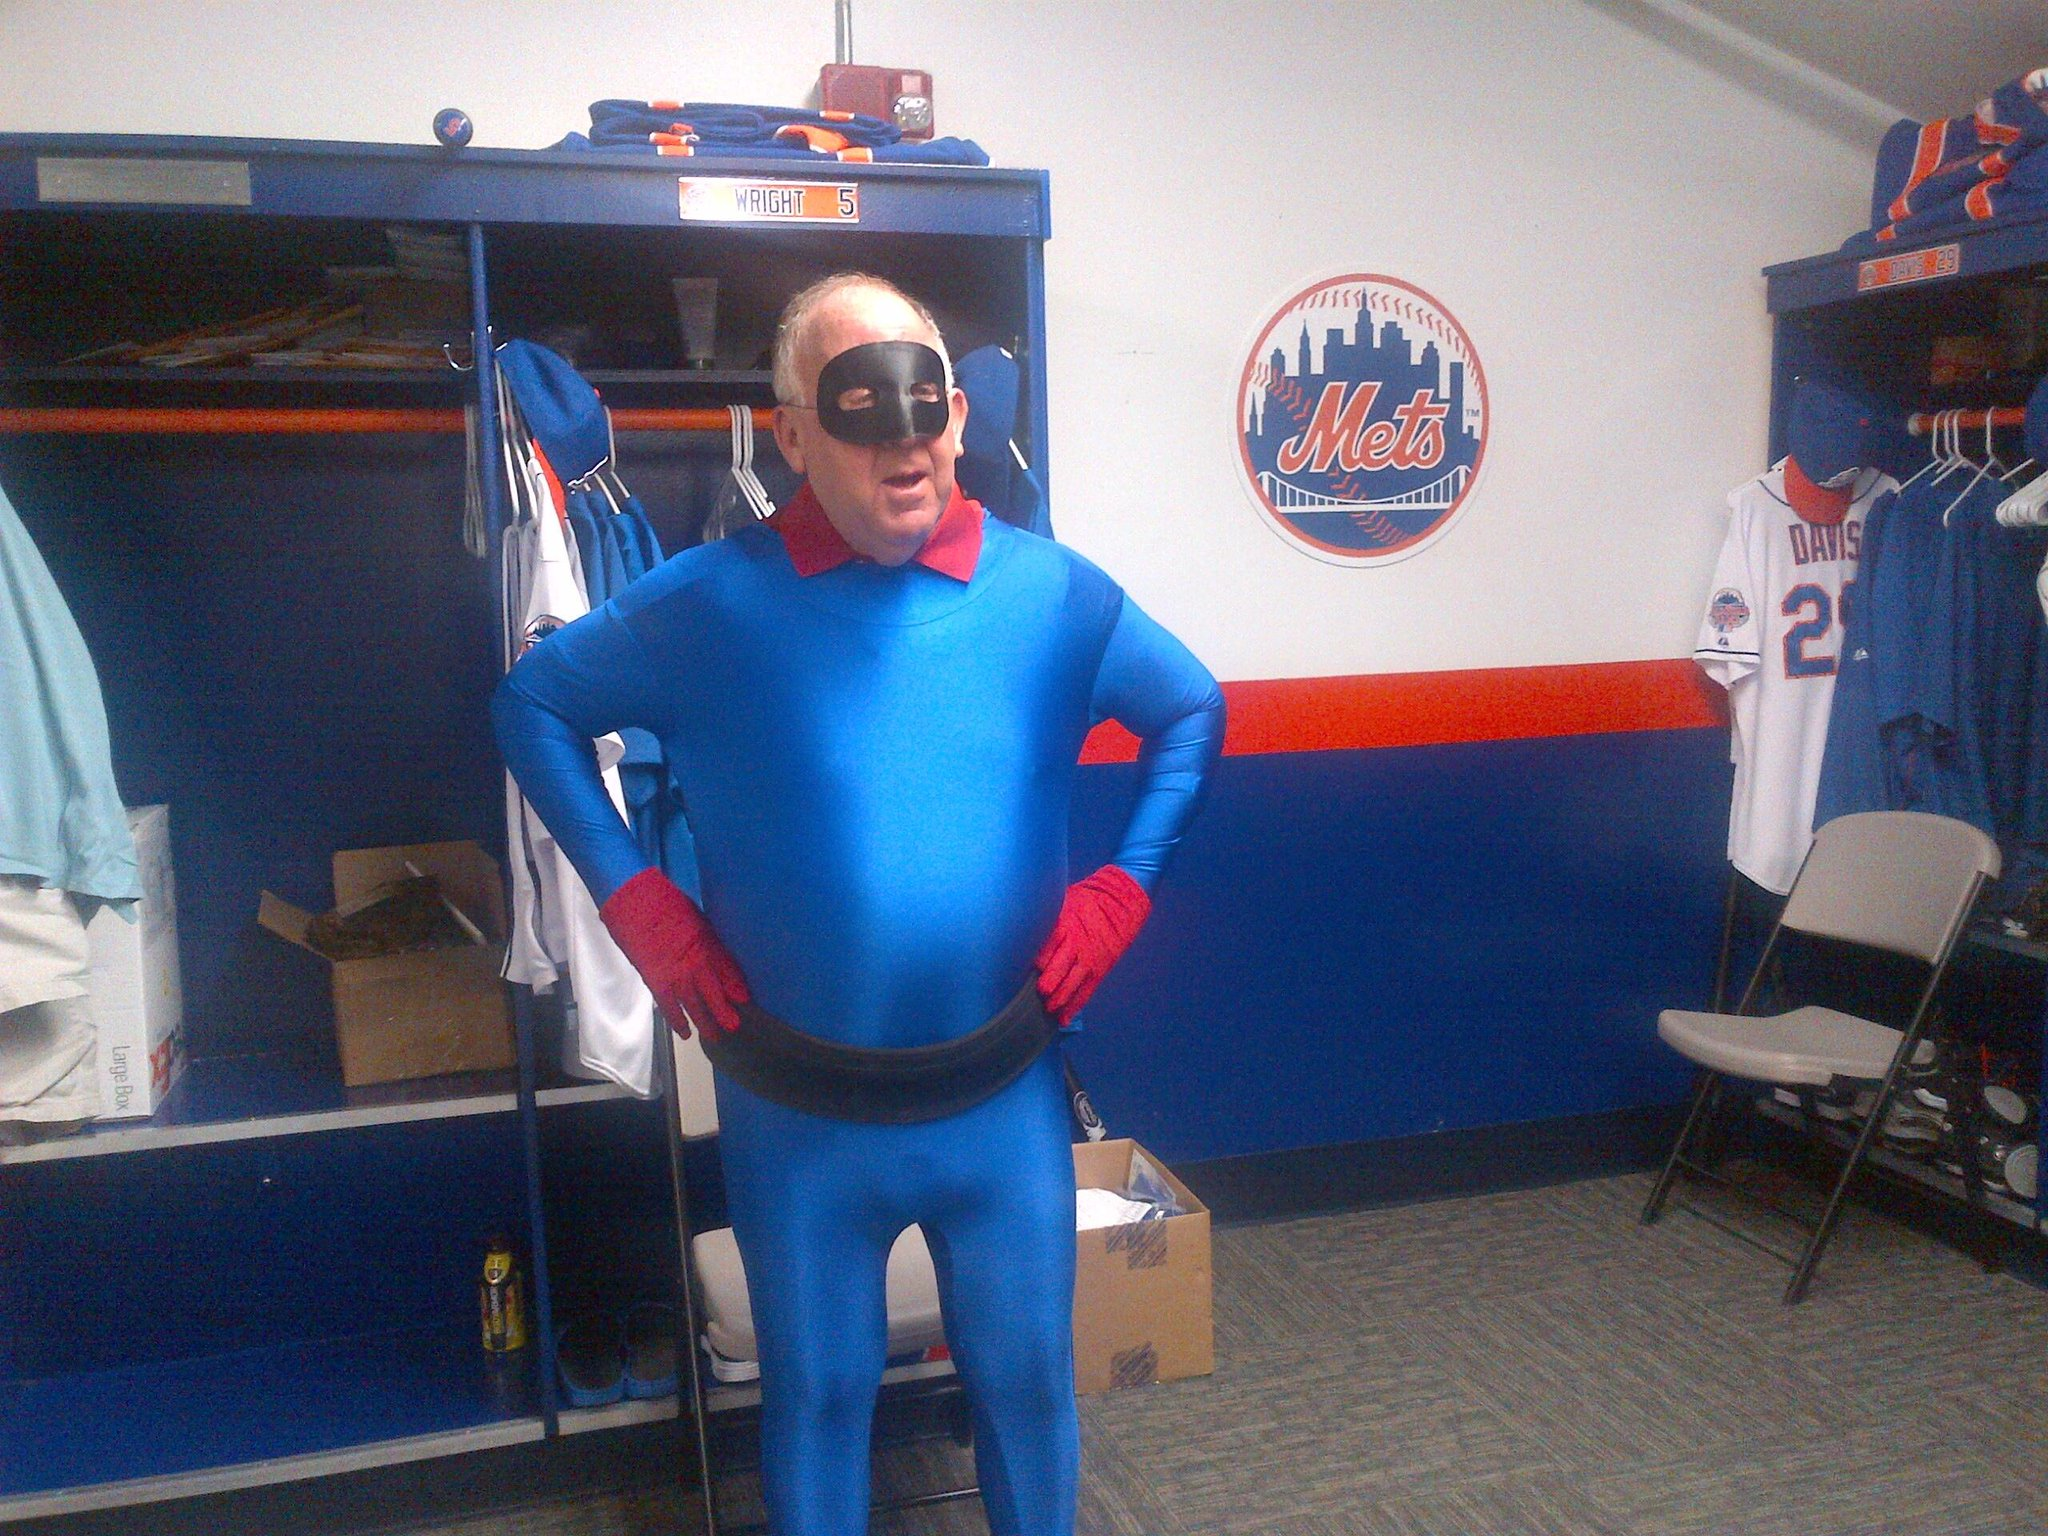 Mets PR VP Jay Horwitz dressed as Captain America sidekick Bucky